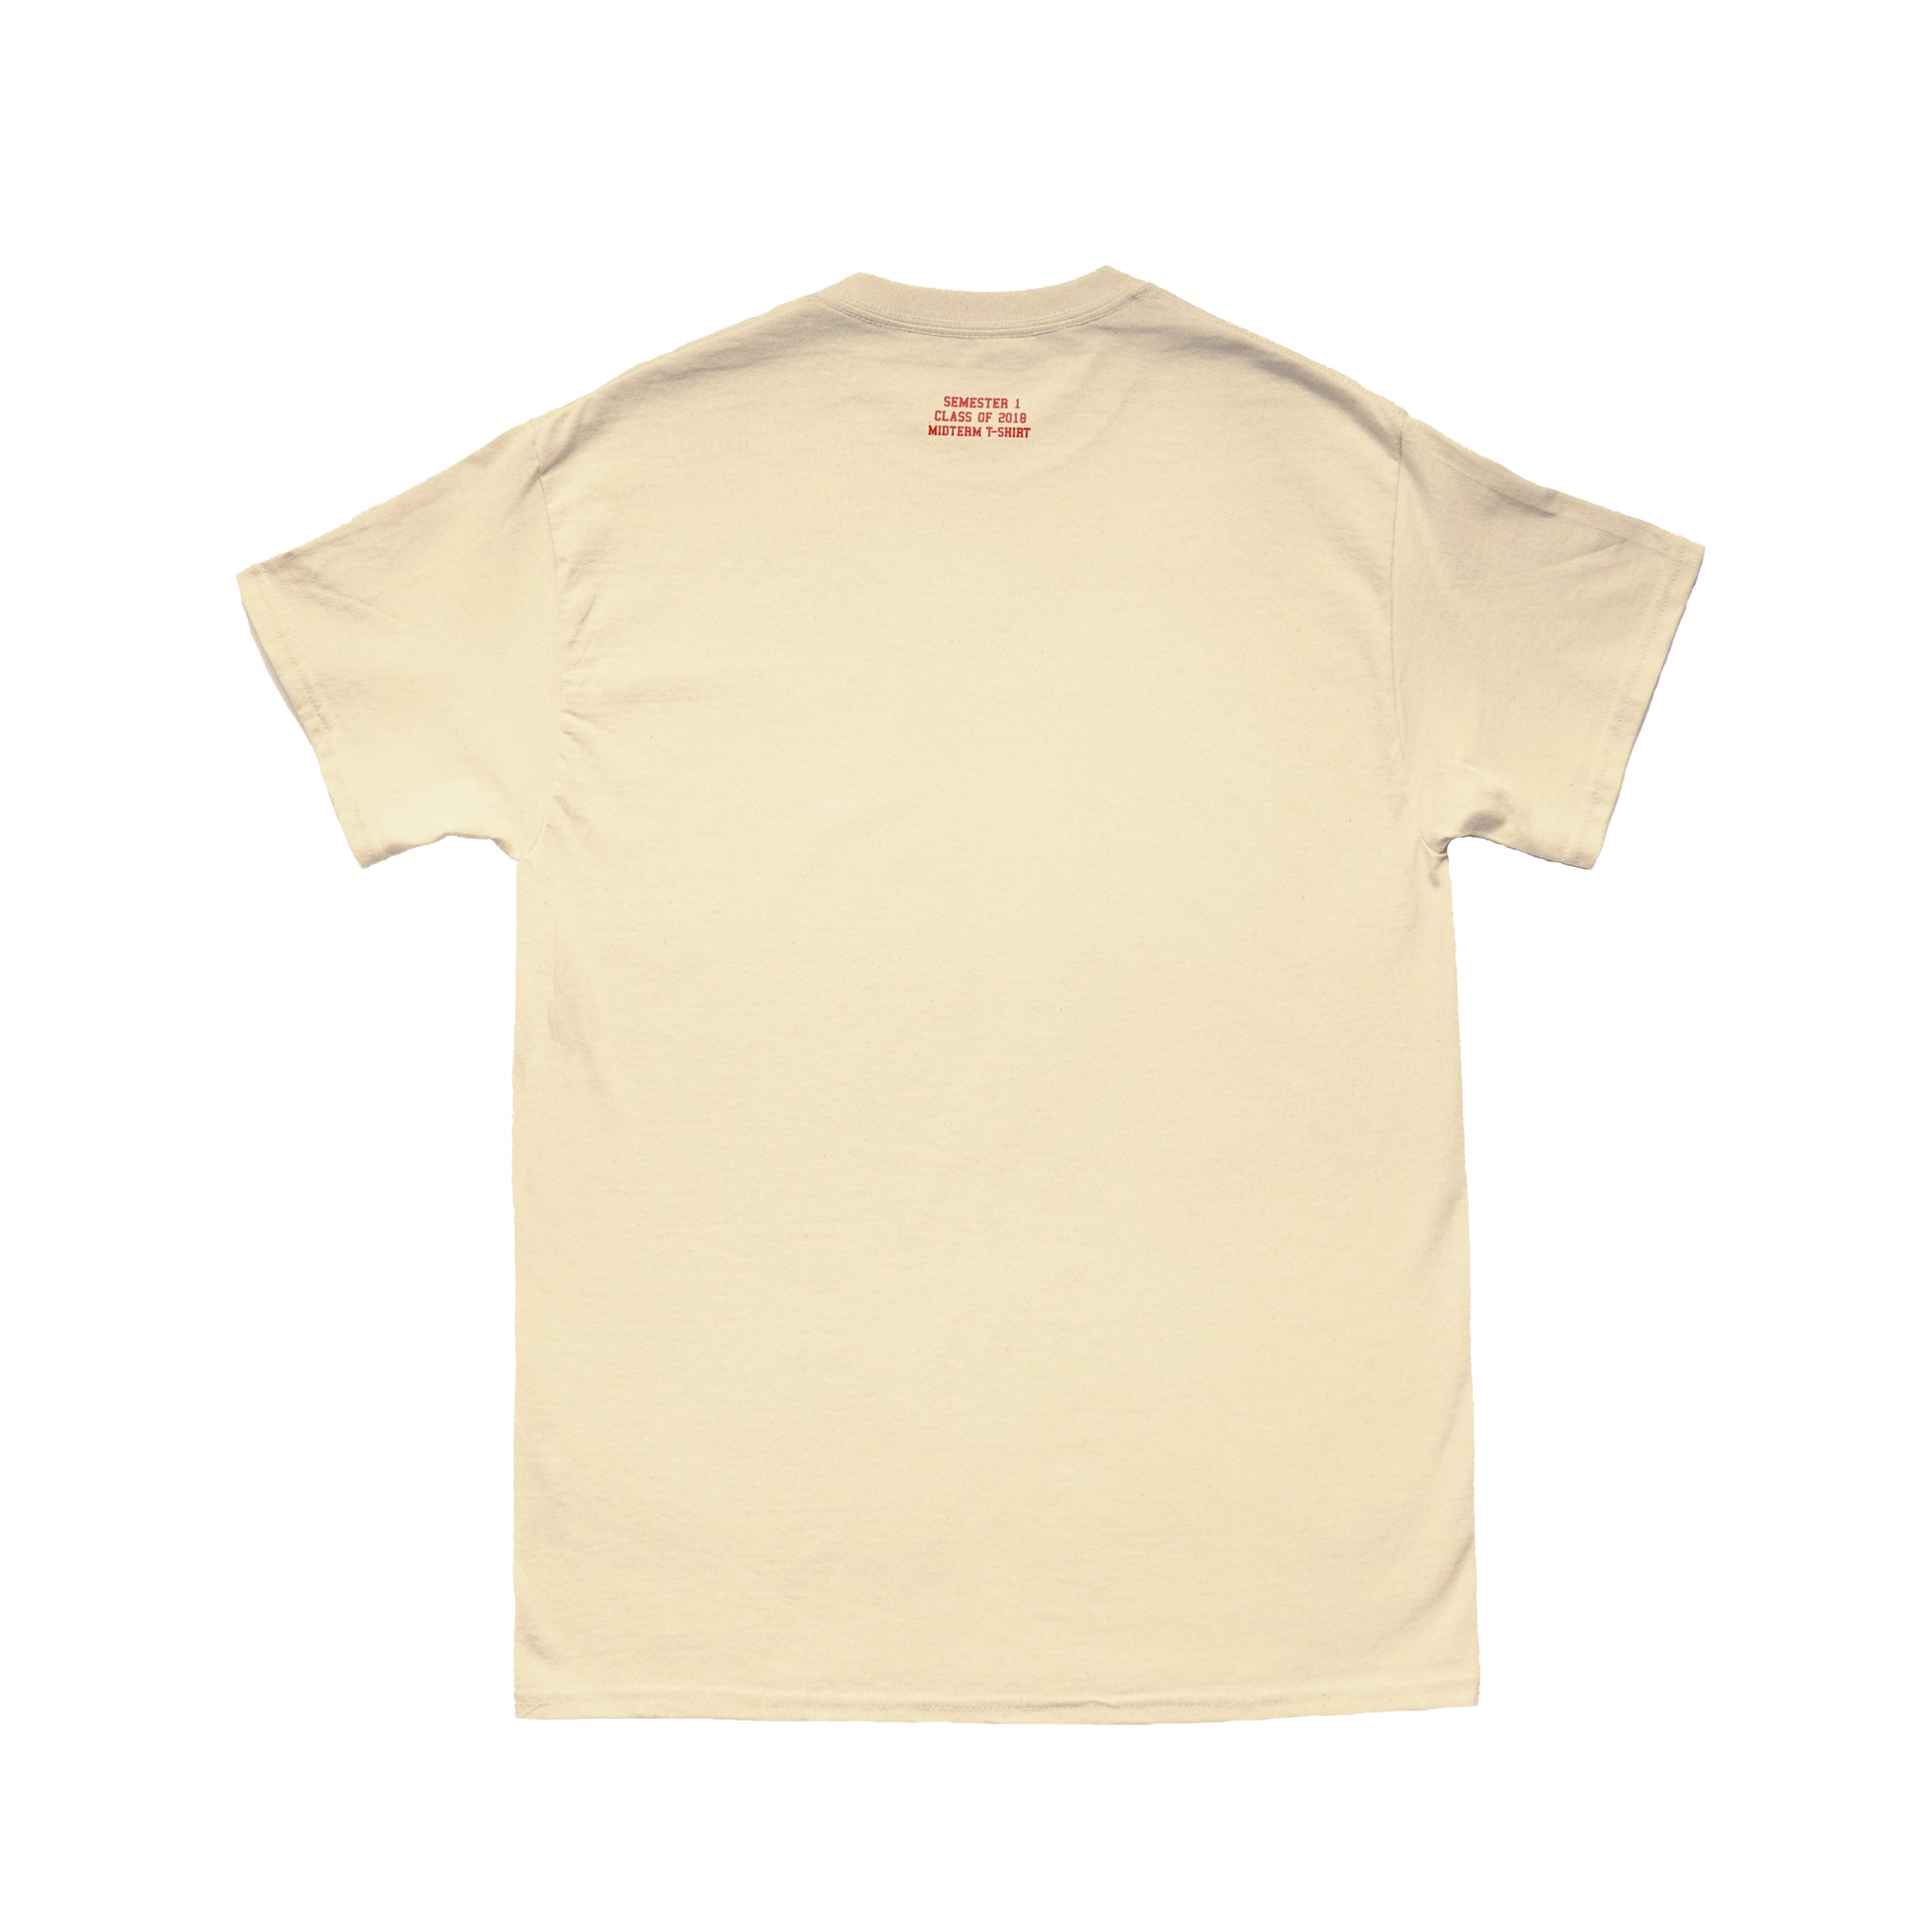 Midterm T-shirt - Off White